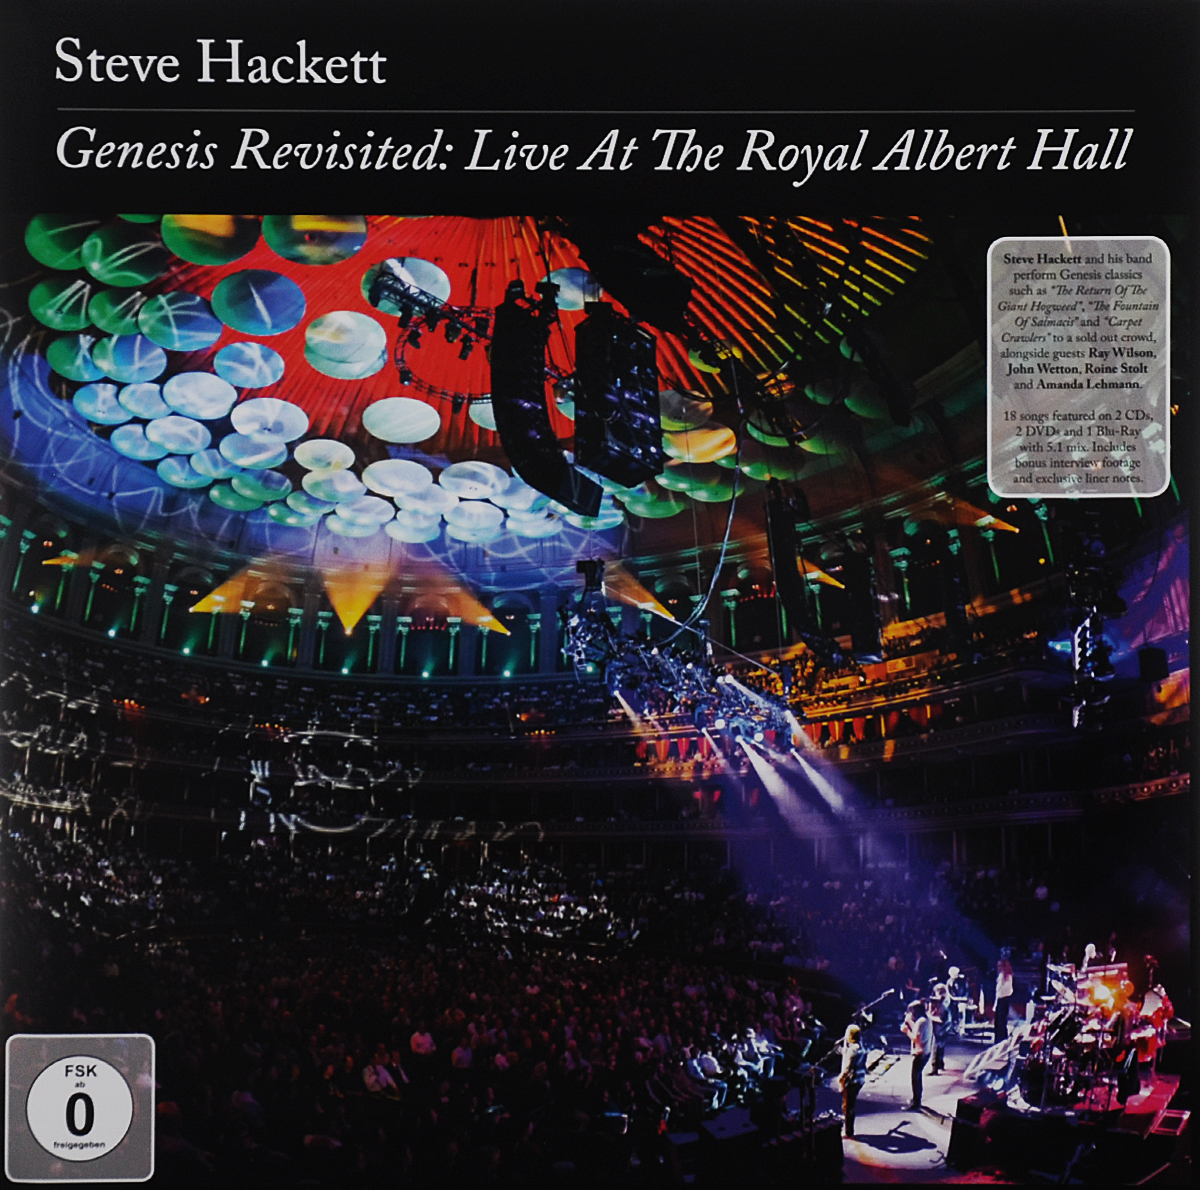 Стив Хэкетт Steve Hackett. Genesis Revisited. Live At The Royal Albert Hall (2 CD + 2 DVD + Blu-ray) genesis – the lamb lies down on broadway 2 lp